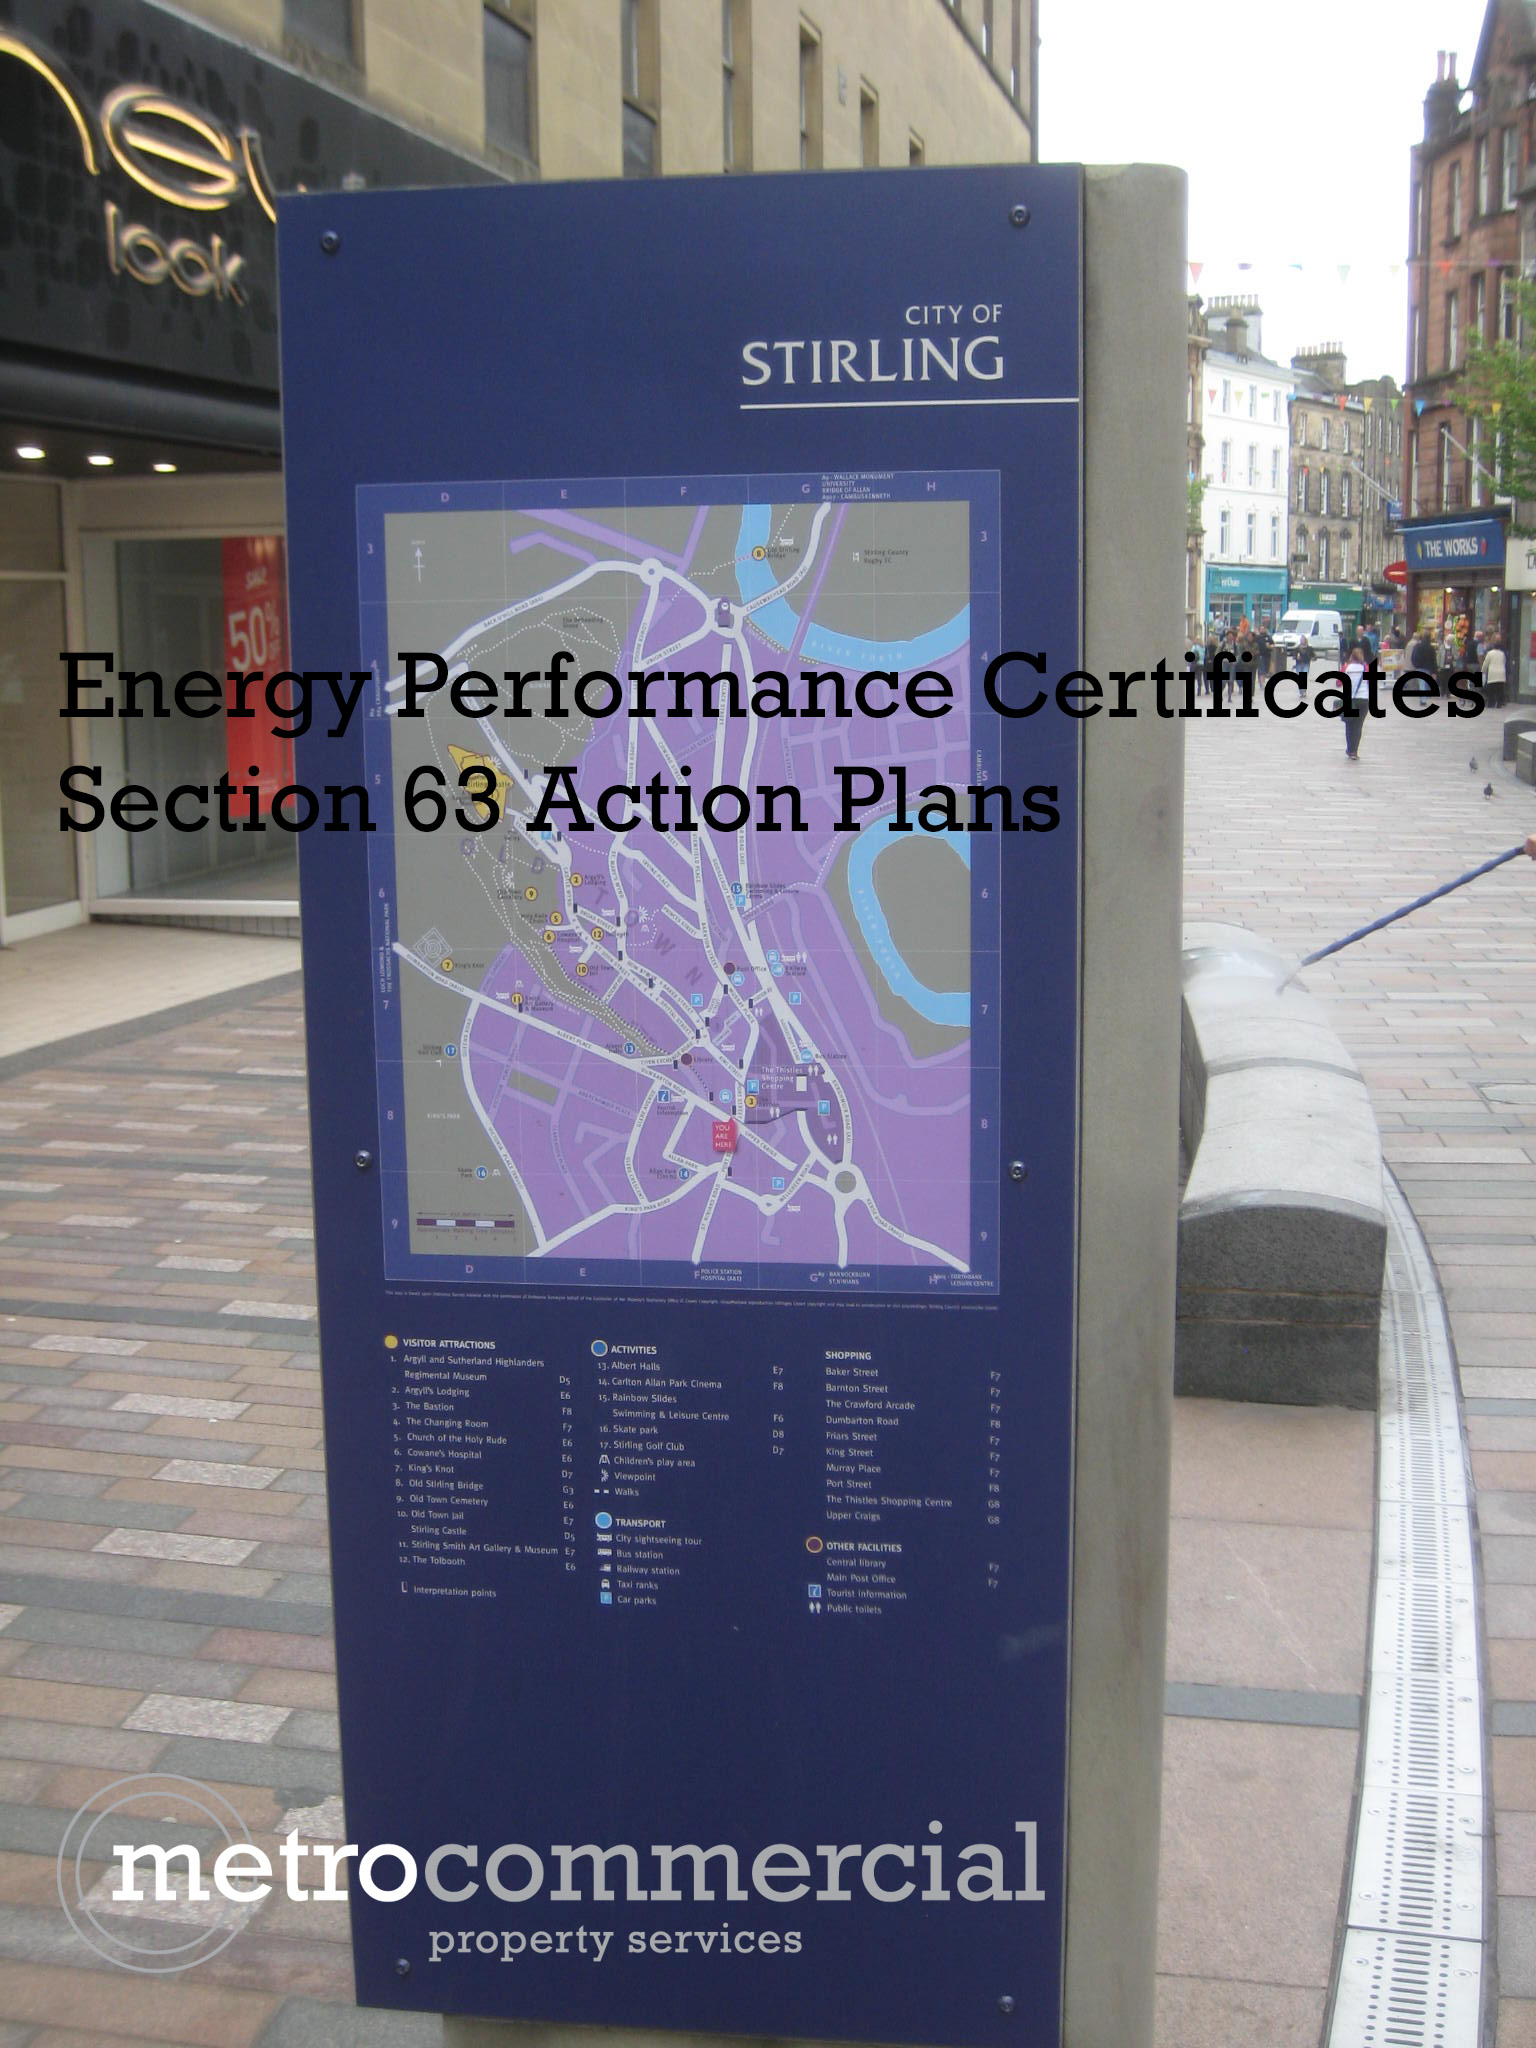 EPC Stirling Energy Performance Certificates in Stirling